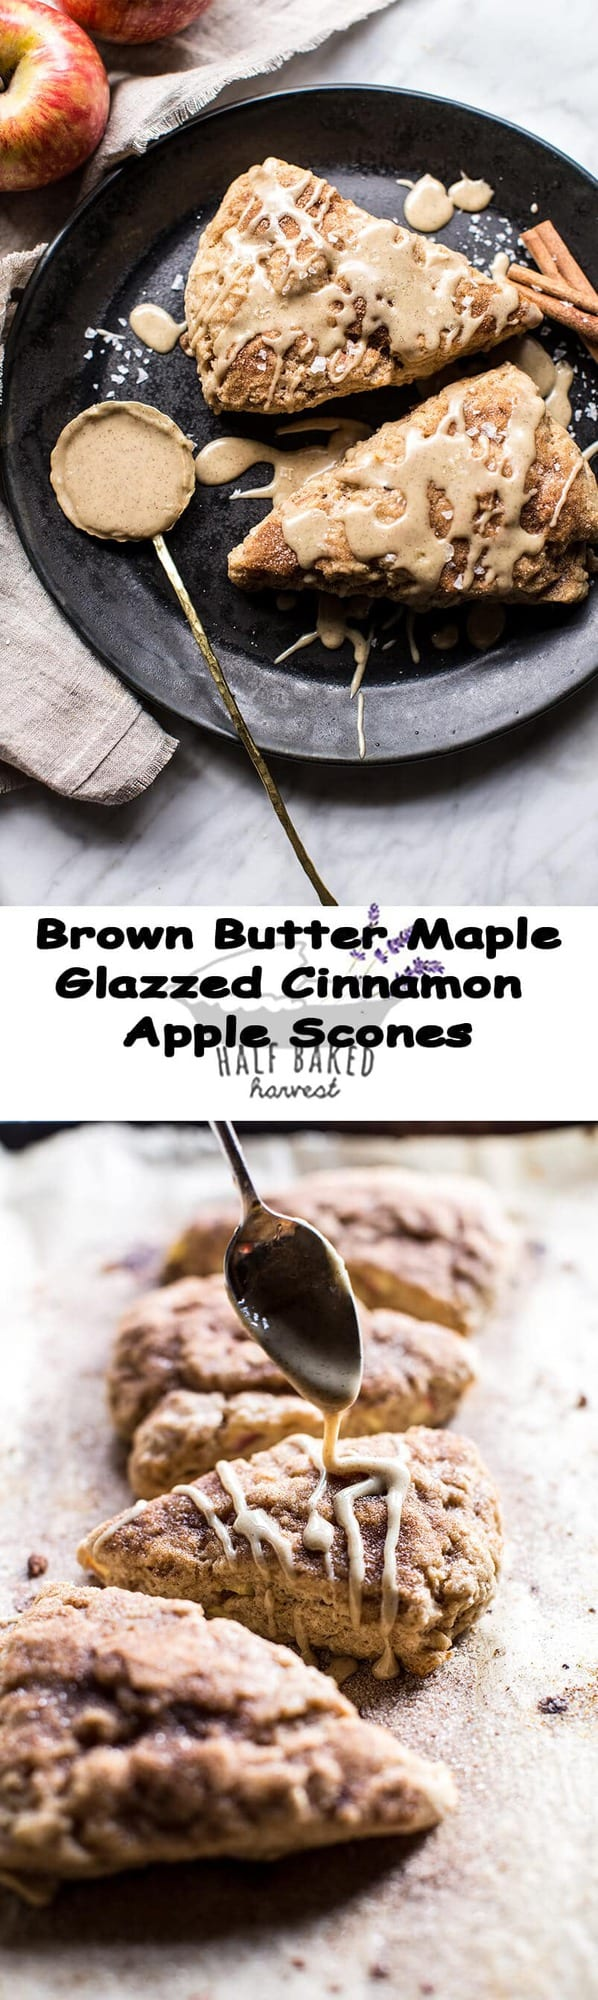 Brown Butter Maple Glazed Cinnamon Apple Scones | halfbakedharvest.com @hbharvest